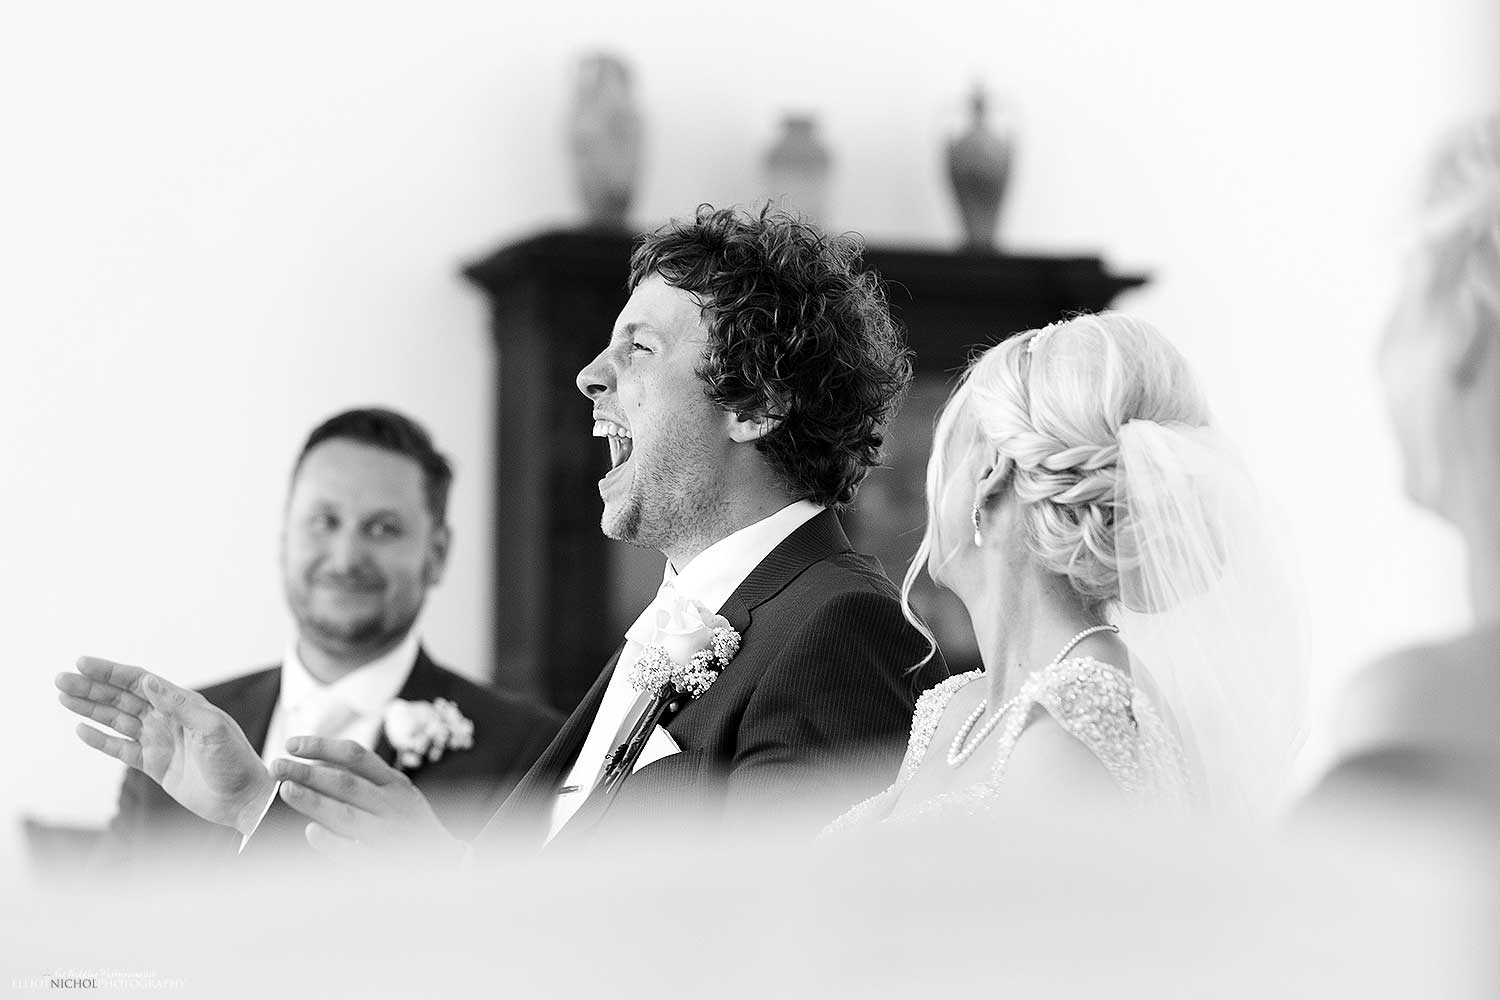 groom-laughing-ceremony-wedding-photography-northumberland